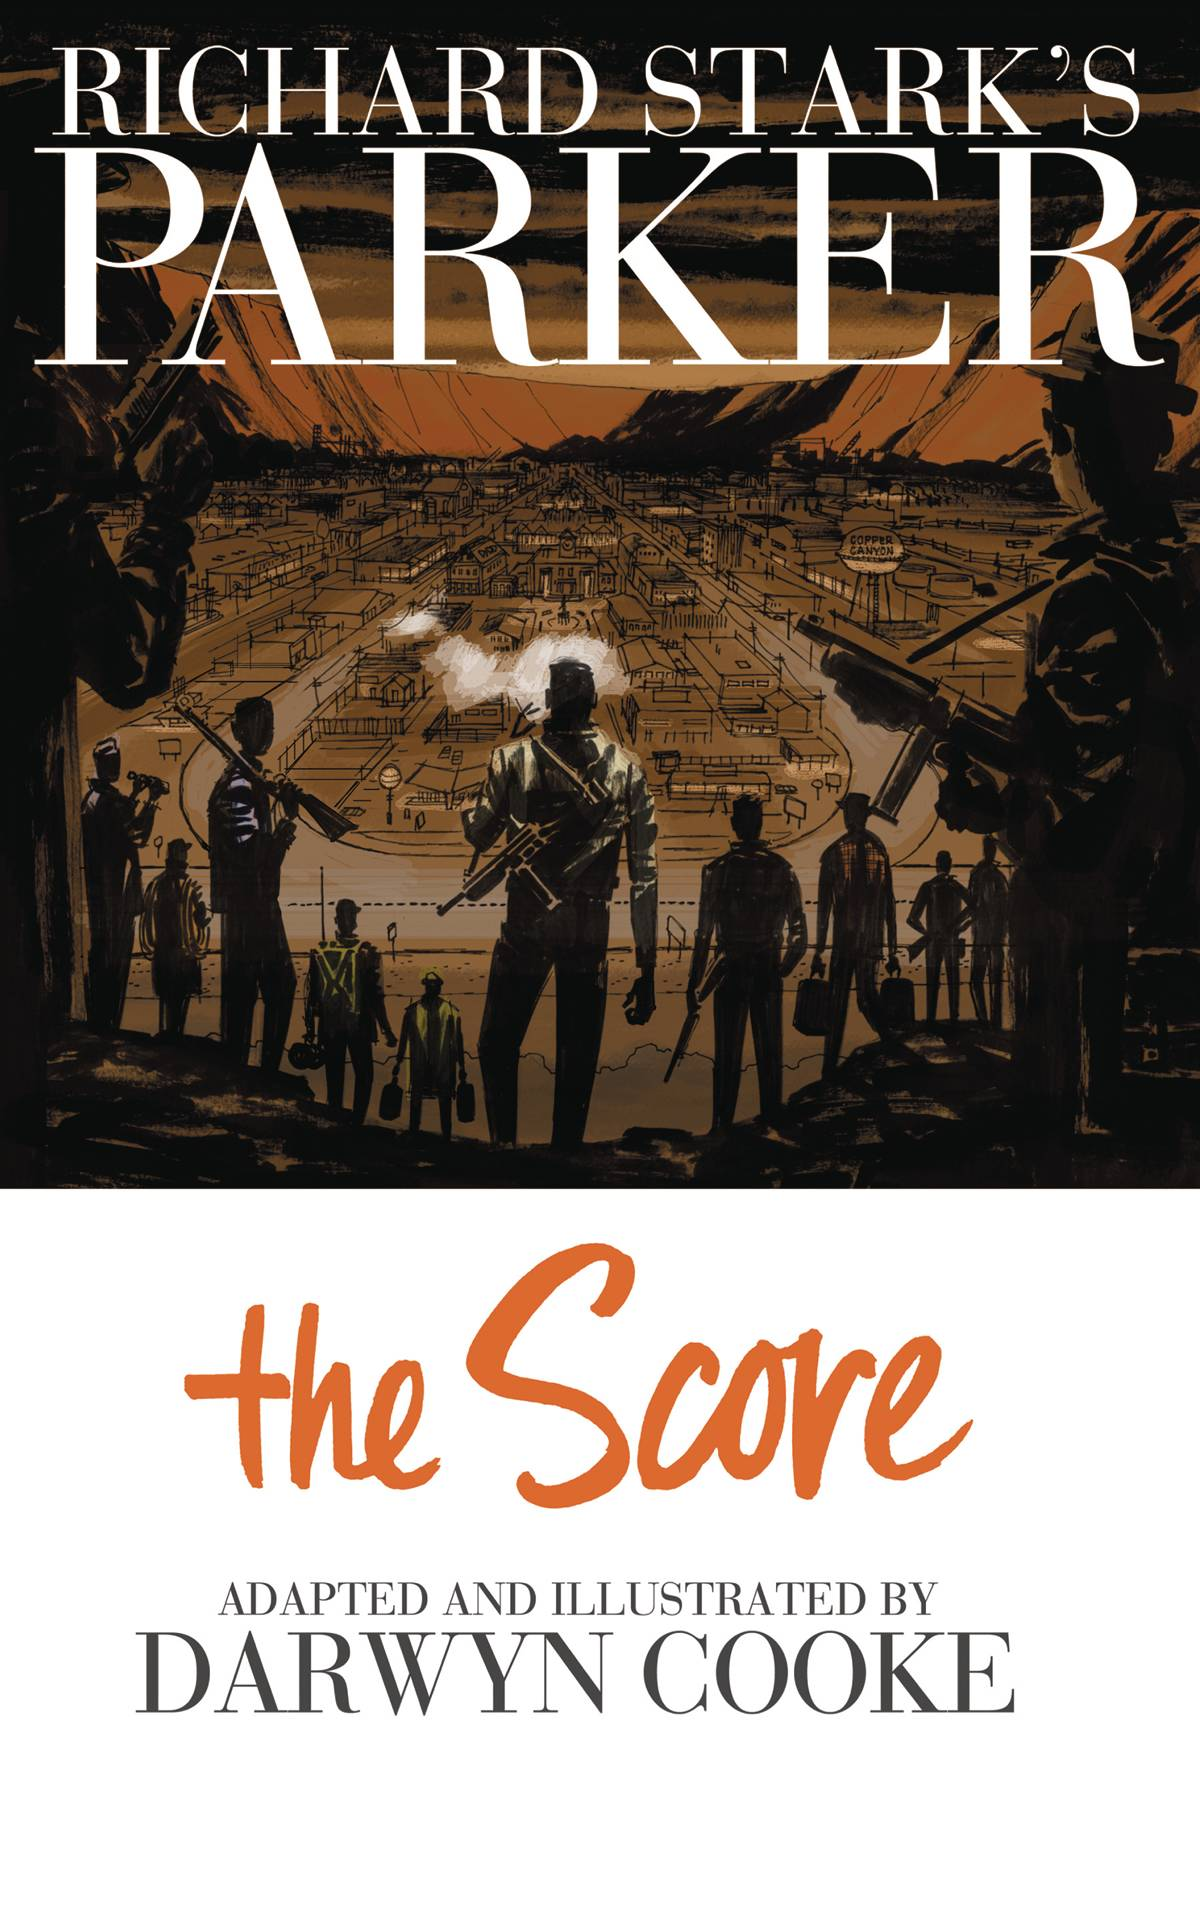 RICHARD STARKS PARKER - THE SCORE TP